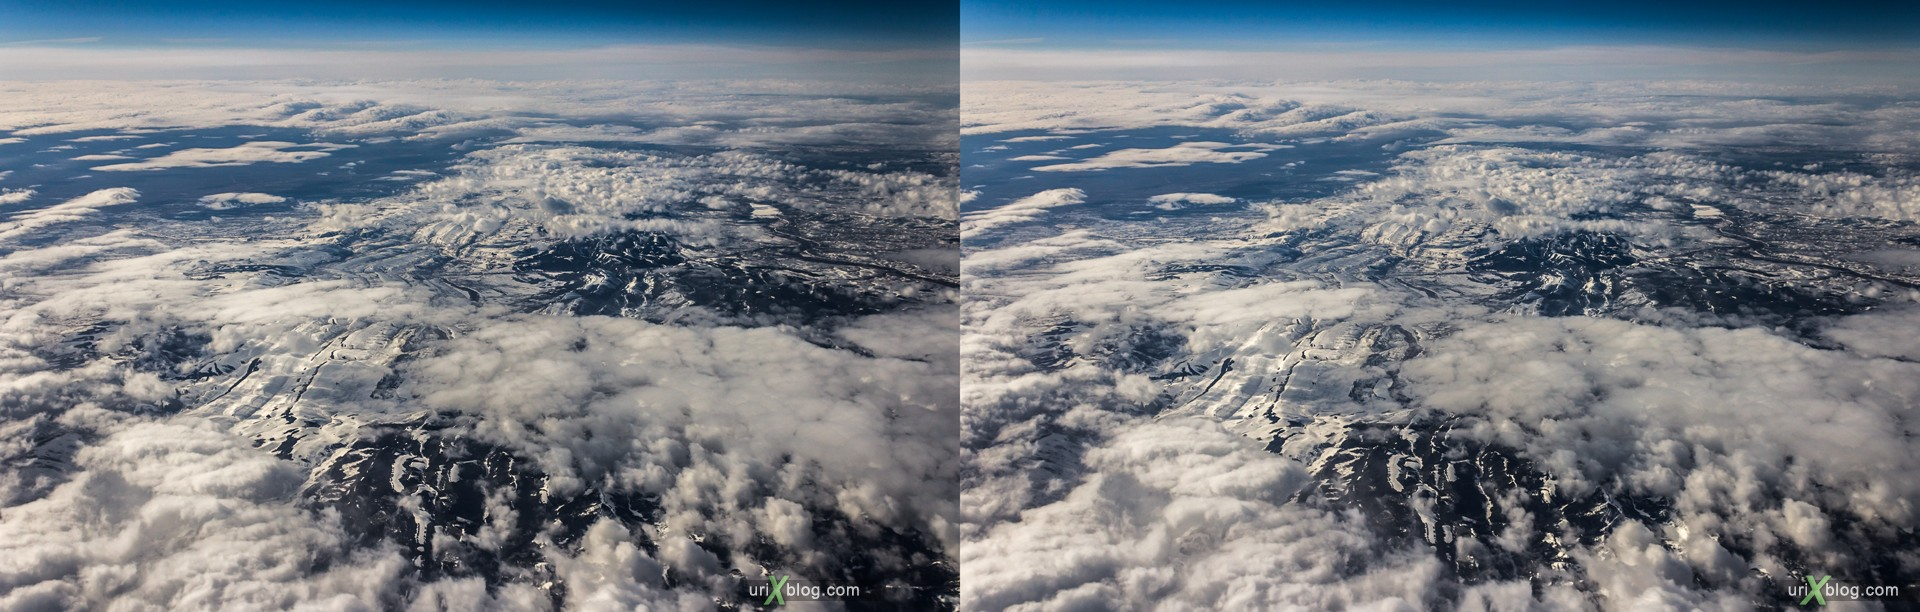 2013, Rocky mountains, USA, panorama, airplane, black and white, bw, snow, ice, clouds, horizon, 3D, stereo pair, cross-eyed, crossview, cross view stereo pair, stereoscopic